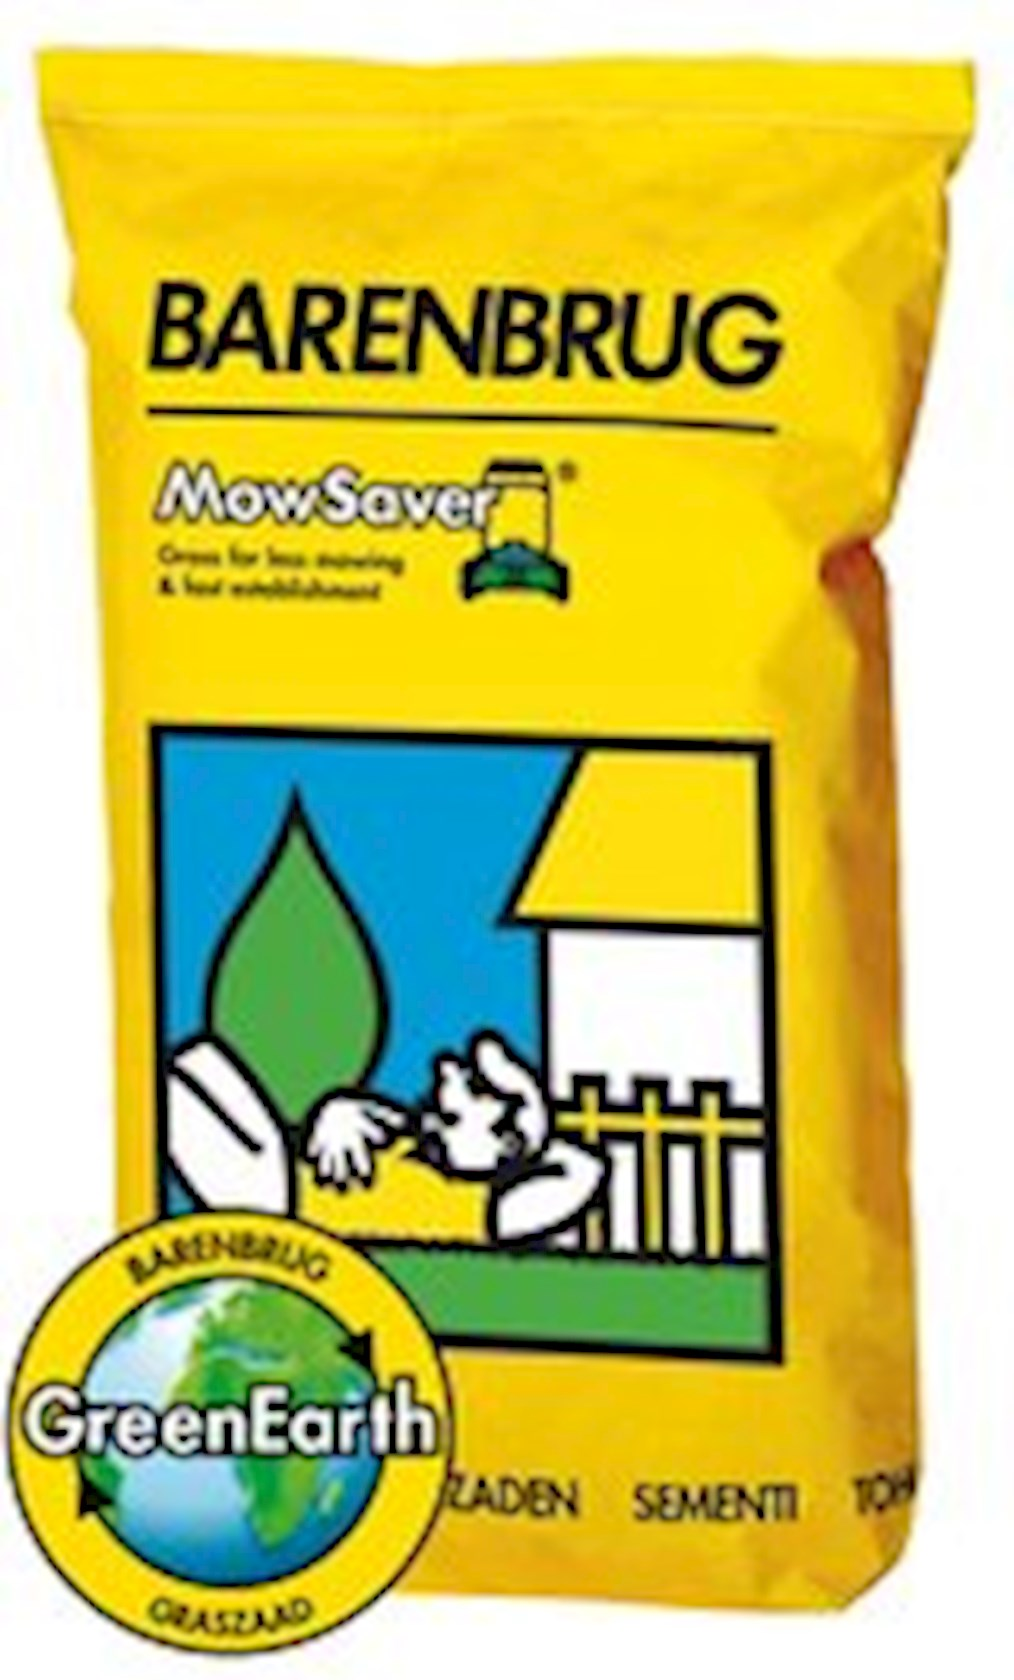 Mow saver - minder maaien graszaad 15Kg met coating (yellow Jacket water management)